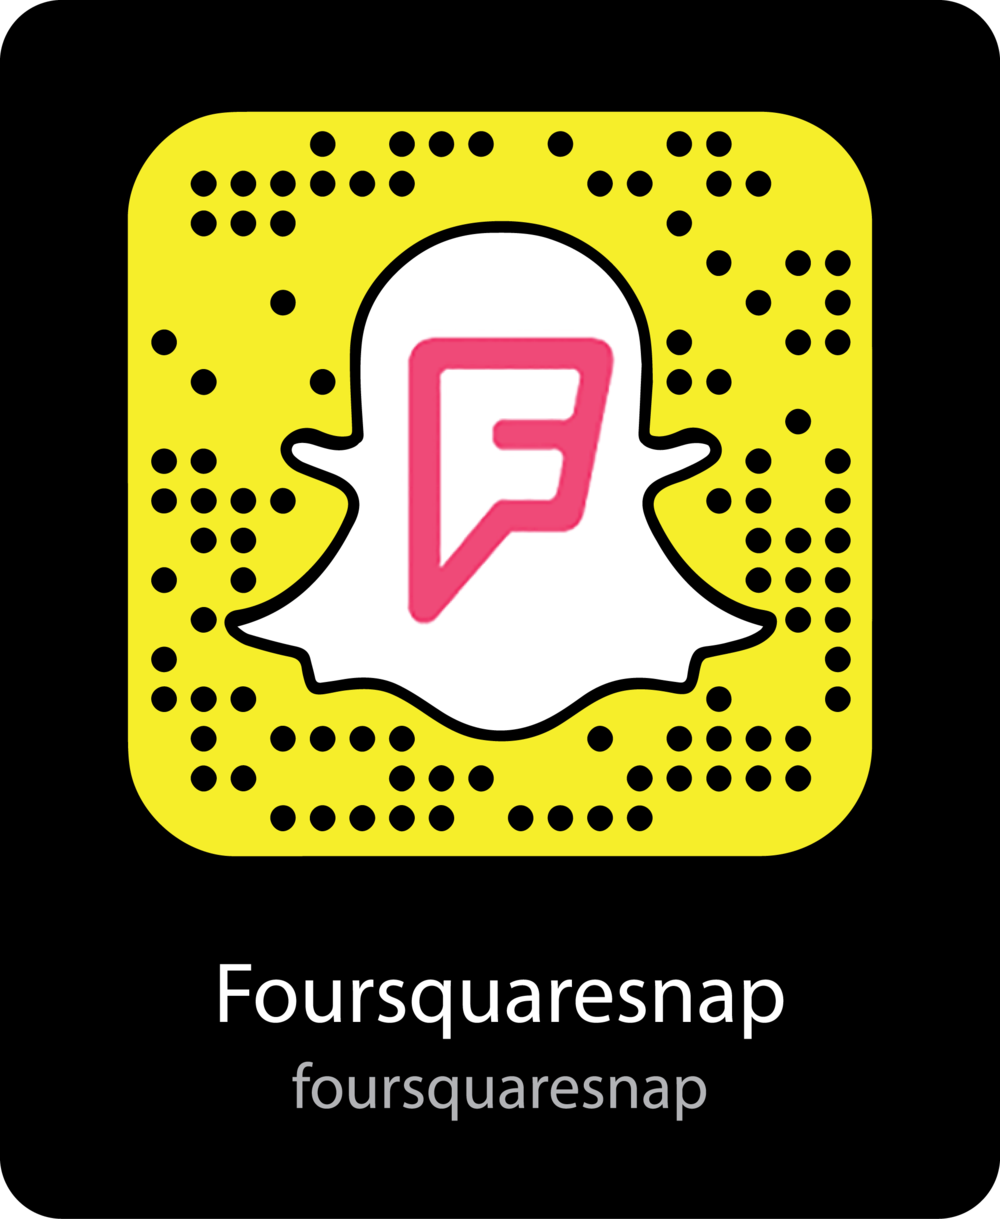 foursquaresnap-Brands-snapchat-snapcode.png